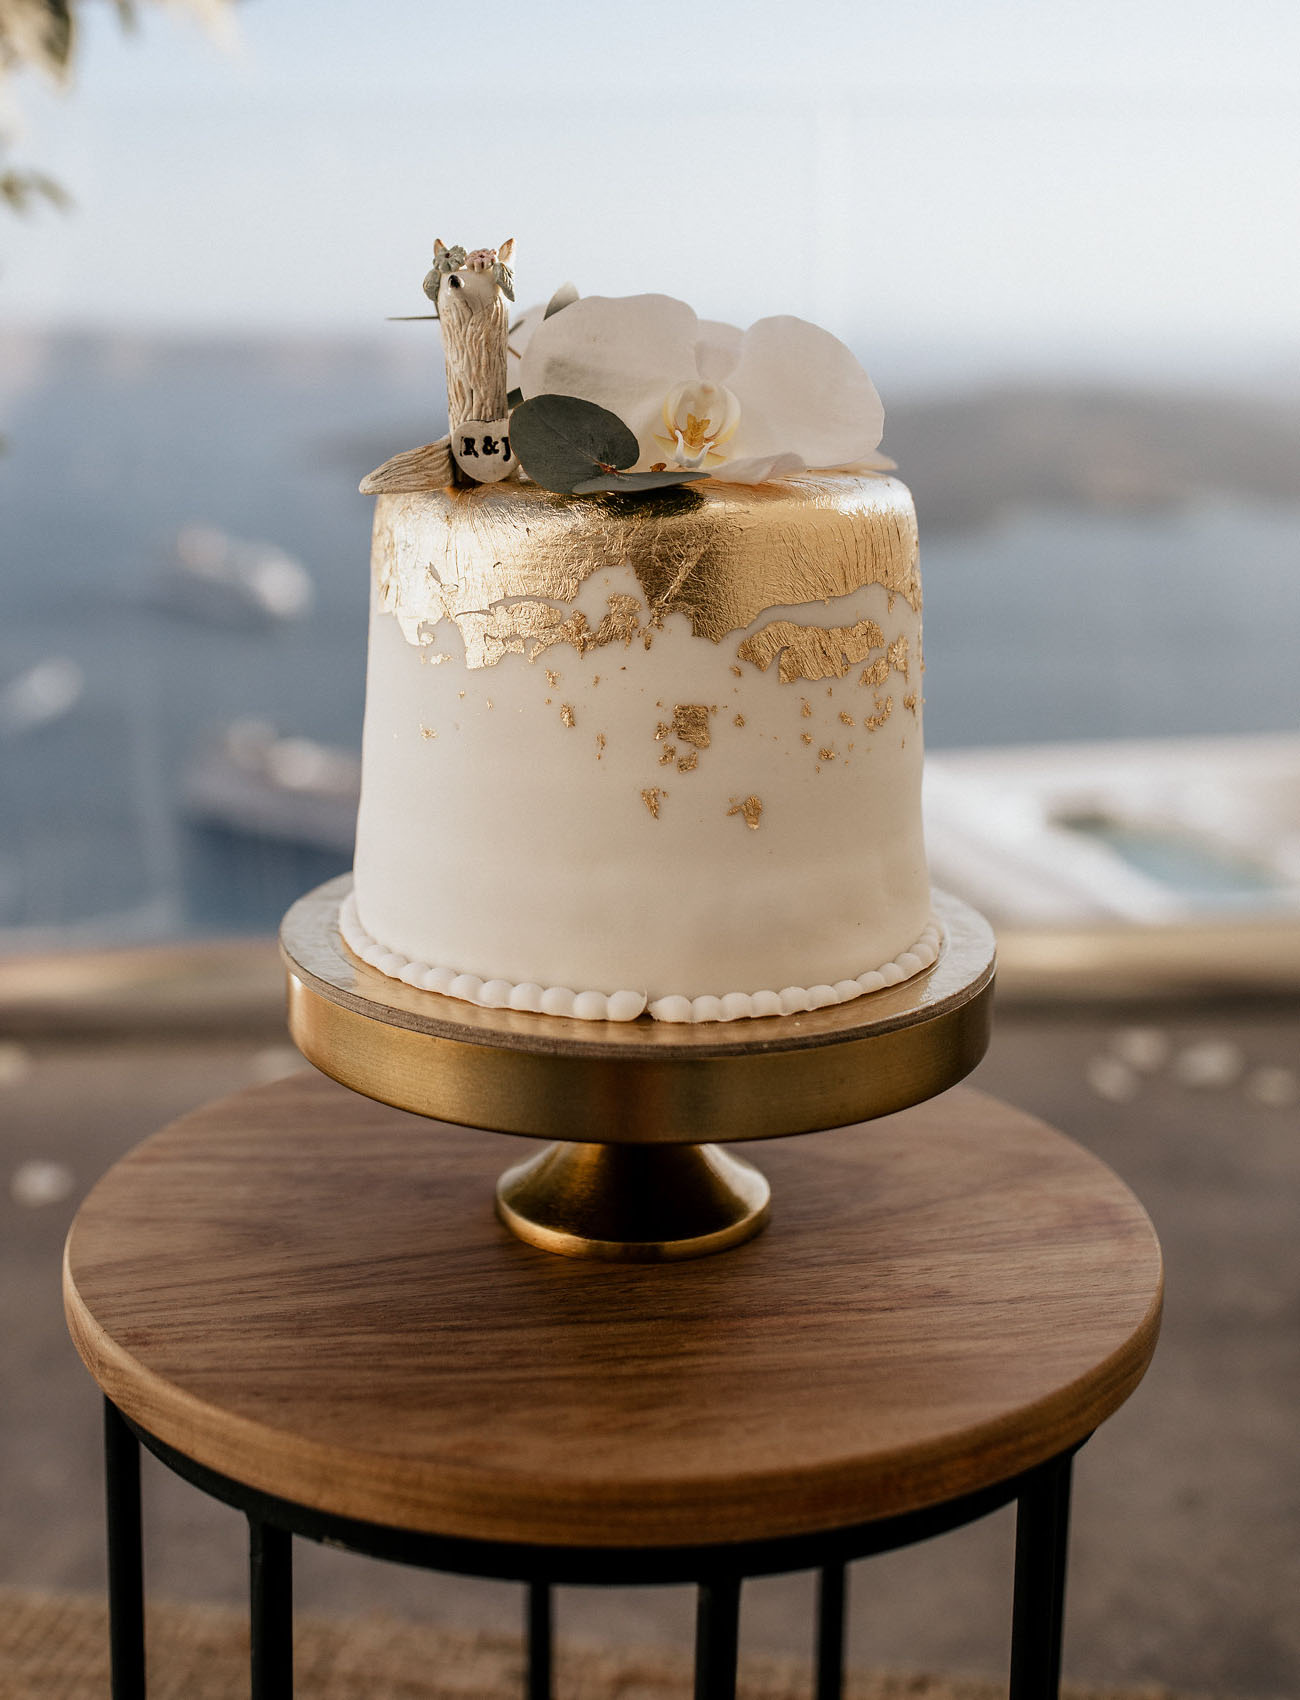 The wedding cake is a white one with gold leaf, topped with a white orchid